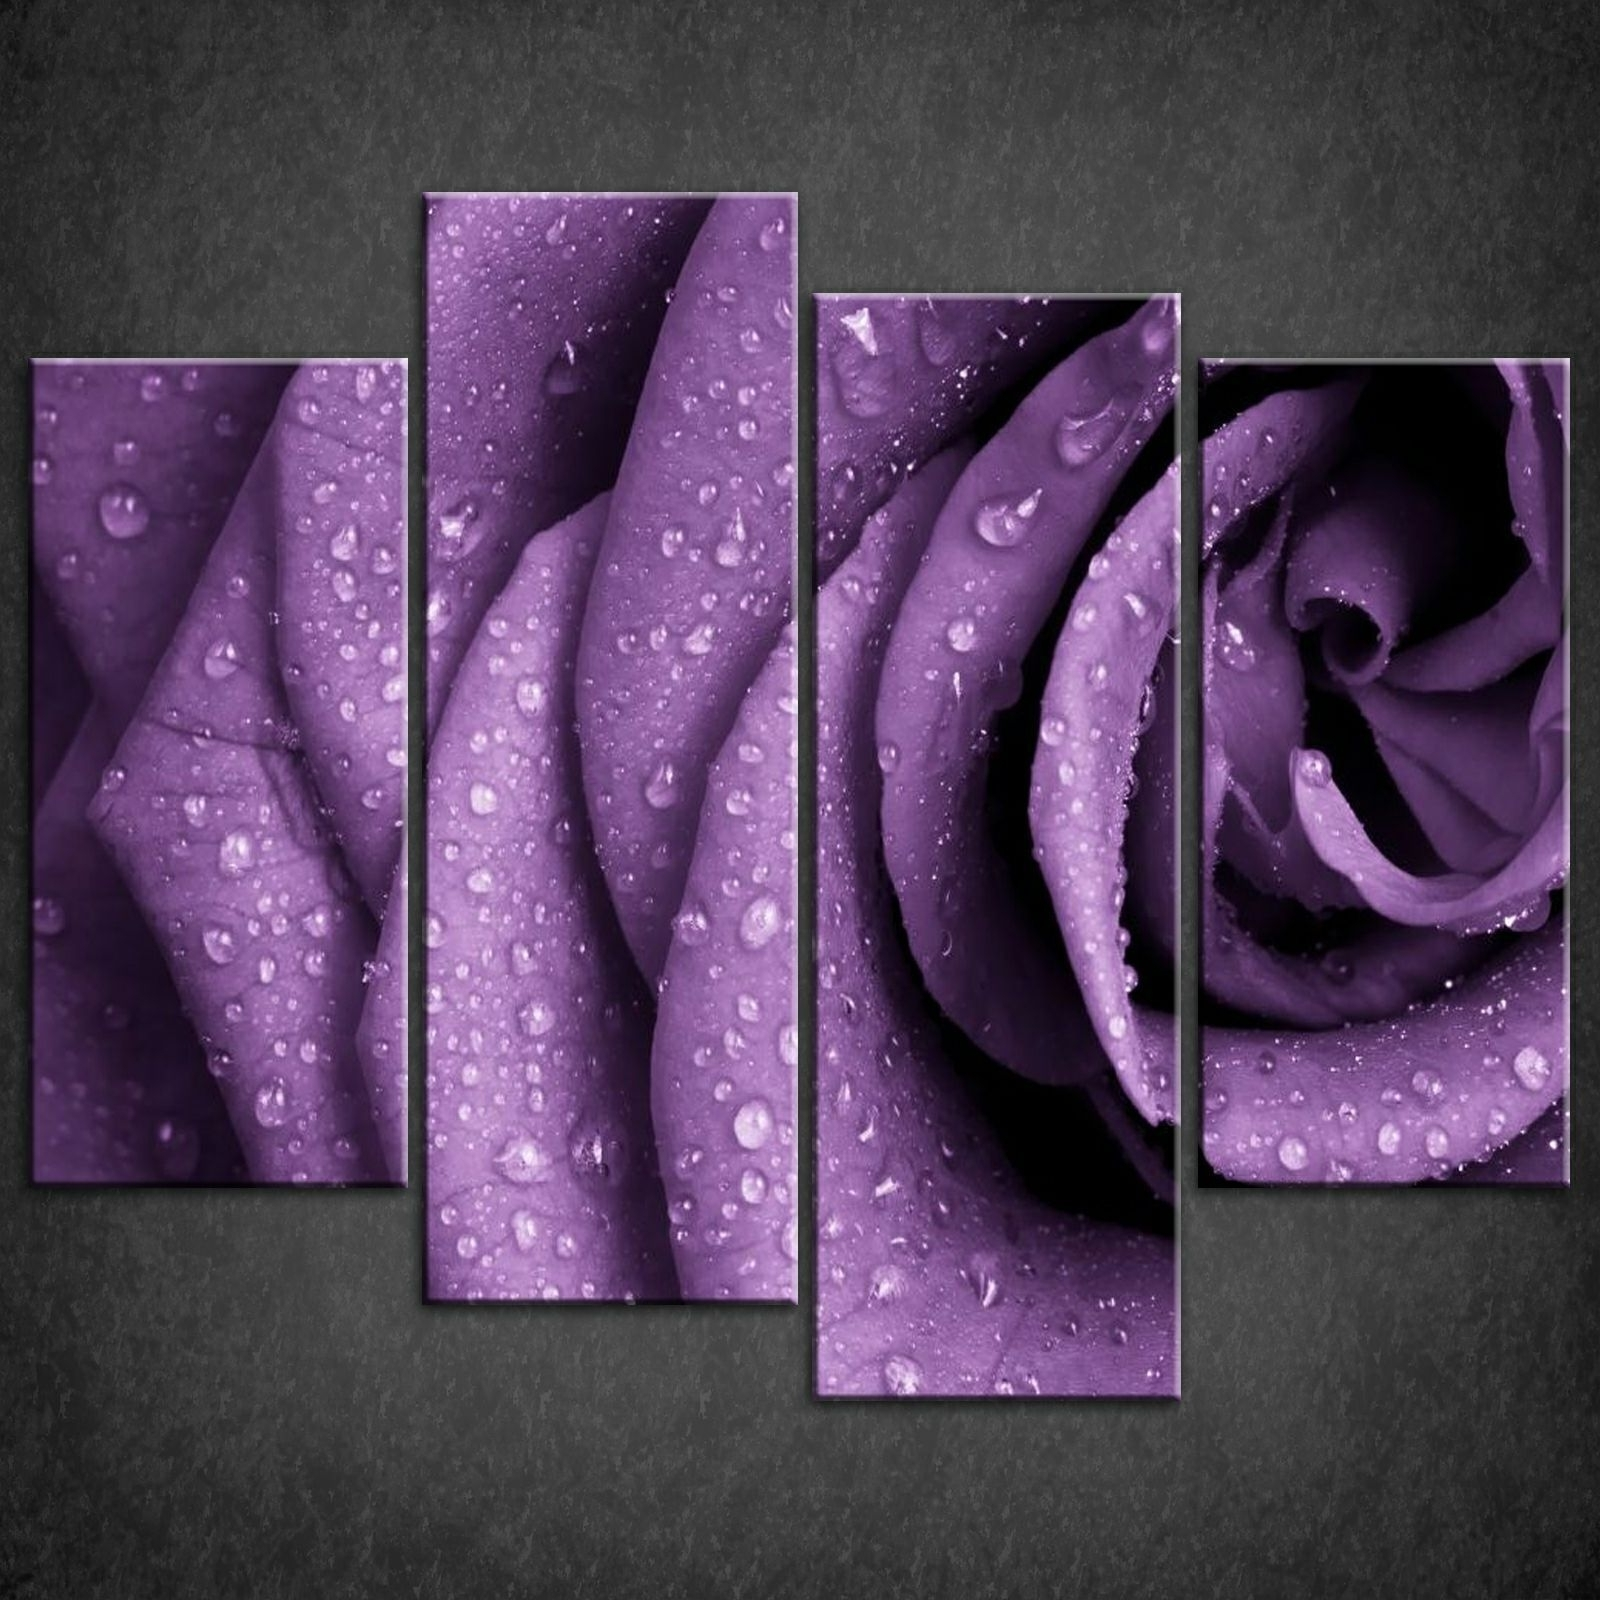 Widely Used Canvas Wall Art In Purple With Wall Art: Beautiful Gallery Purple Wall Art Canvas Purple Wall Art (View 2 of 15)